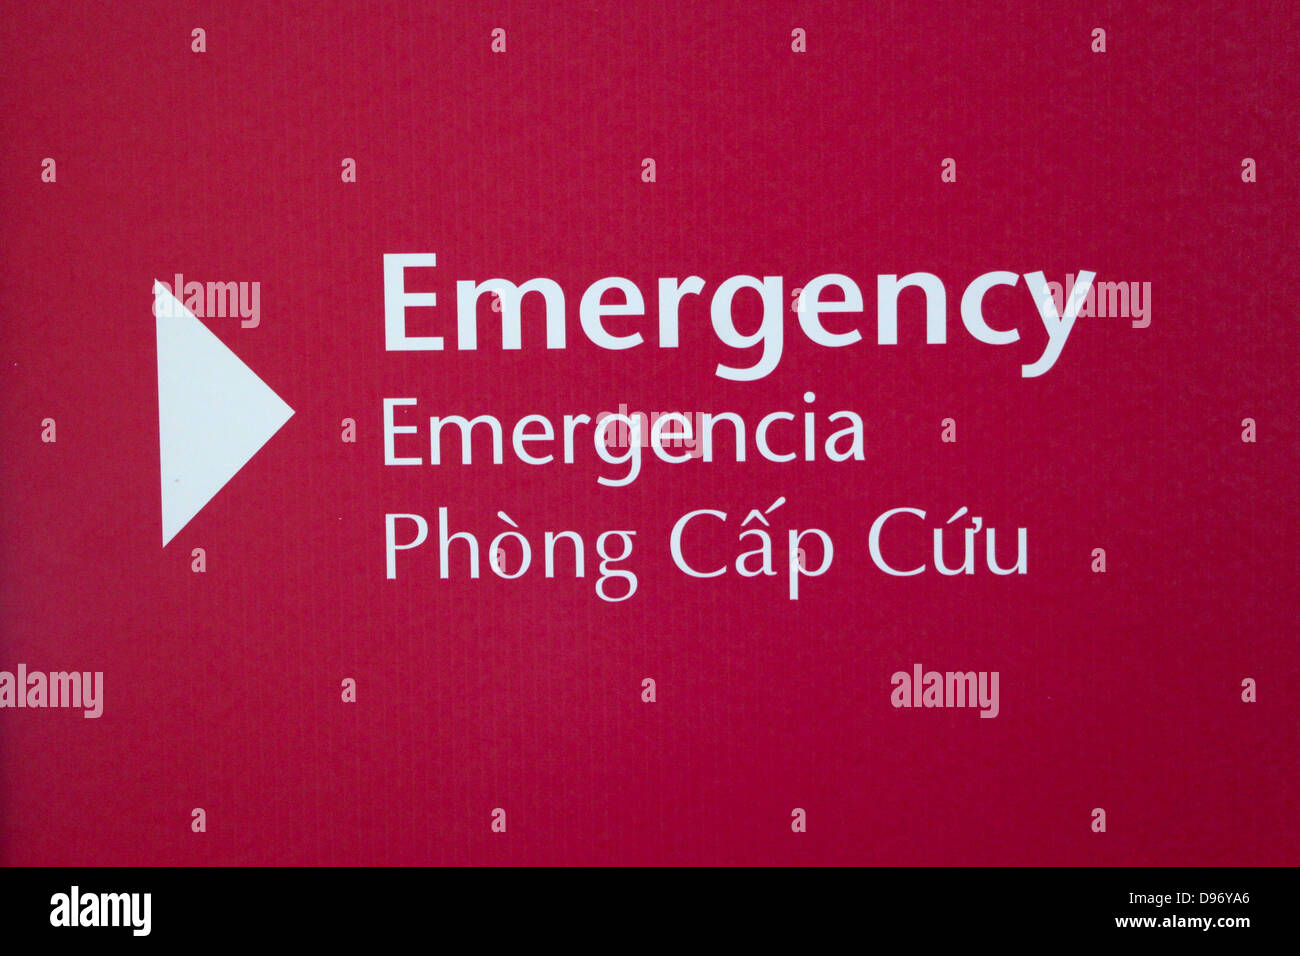 A multi-lingual Emergency sign in English, Spanish and Vietnamese. - Stock Image